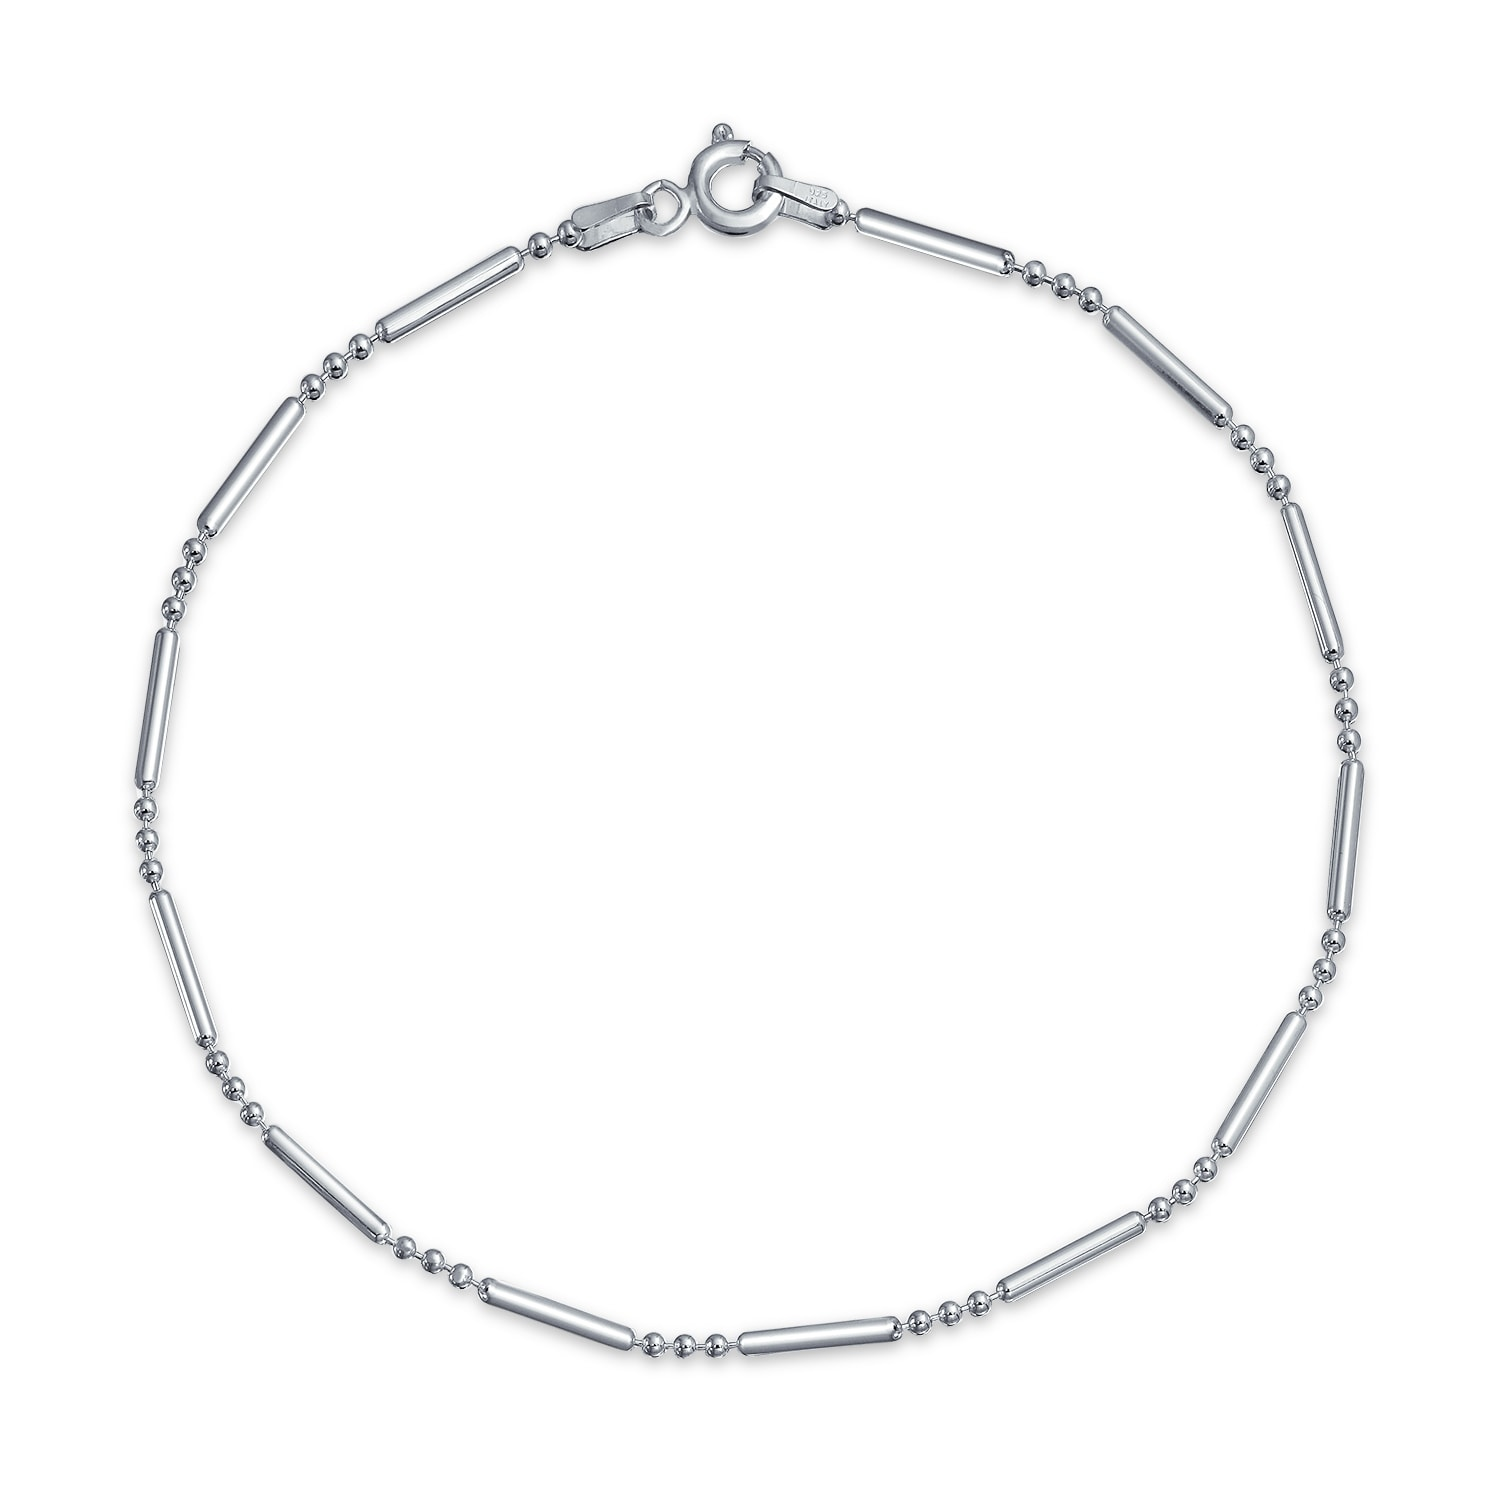 Simple Twisted Box Chain Anklet Charm Ankle Bracelet 925 Sterling Silver 9 Inch